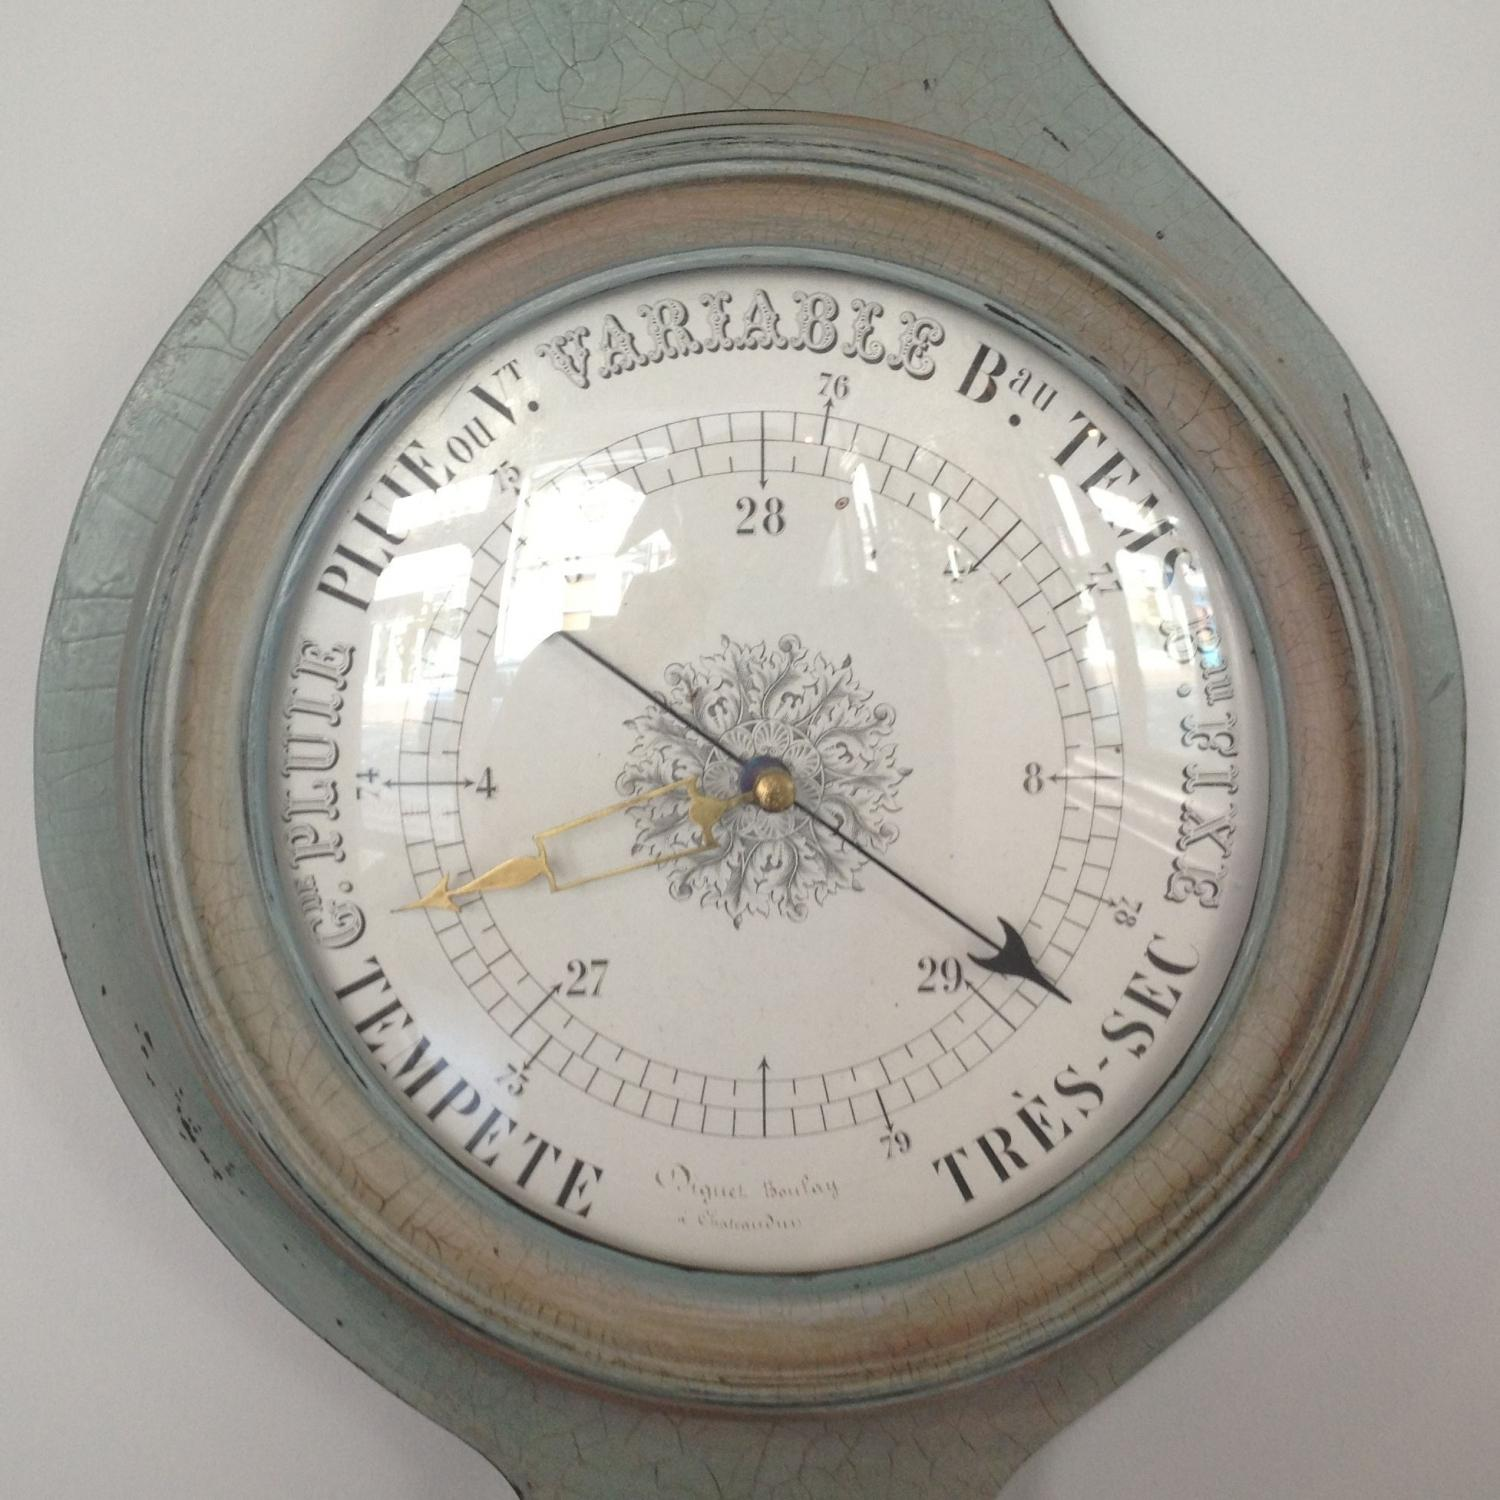 19TH CENTURY FRENCH MERCURY BAROMETER